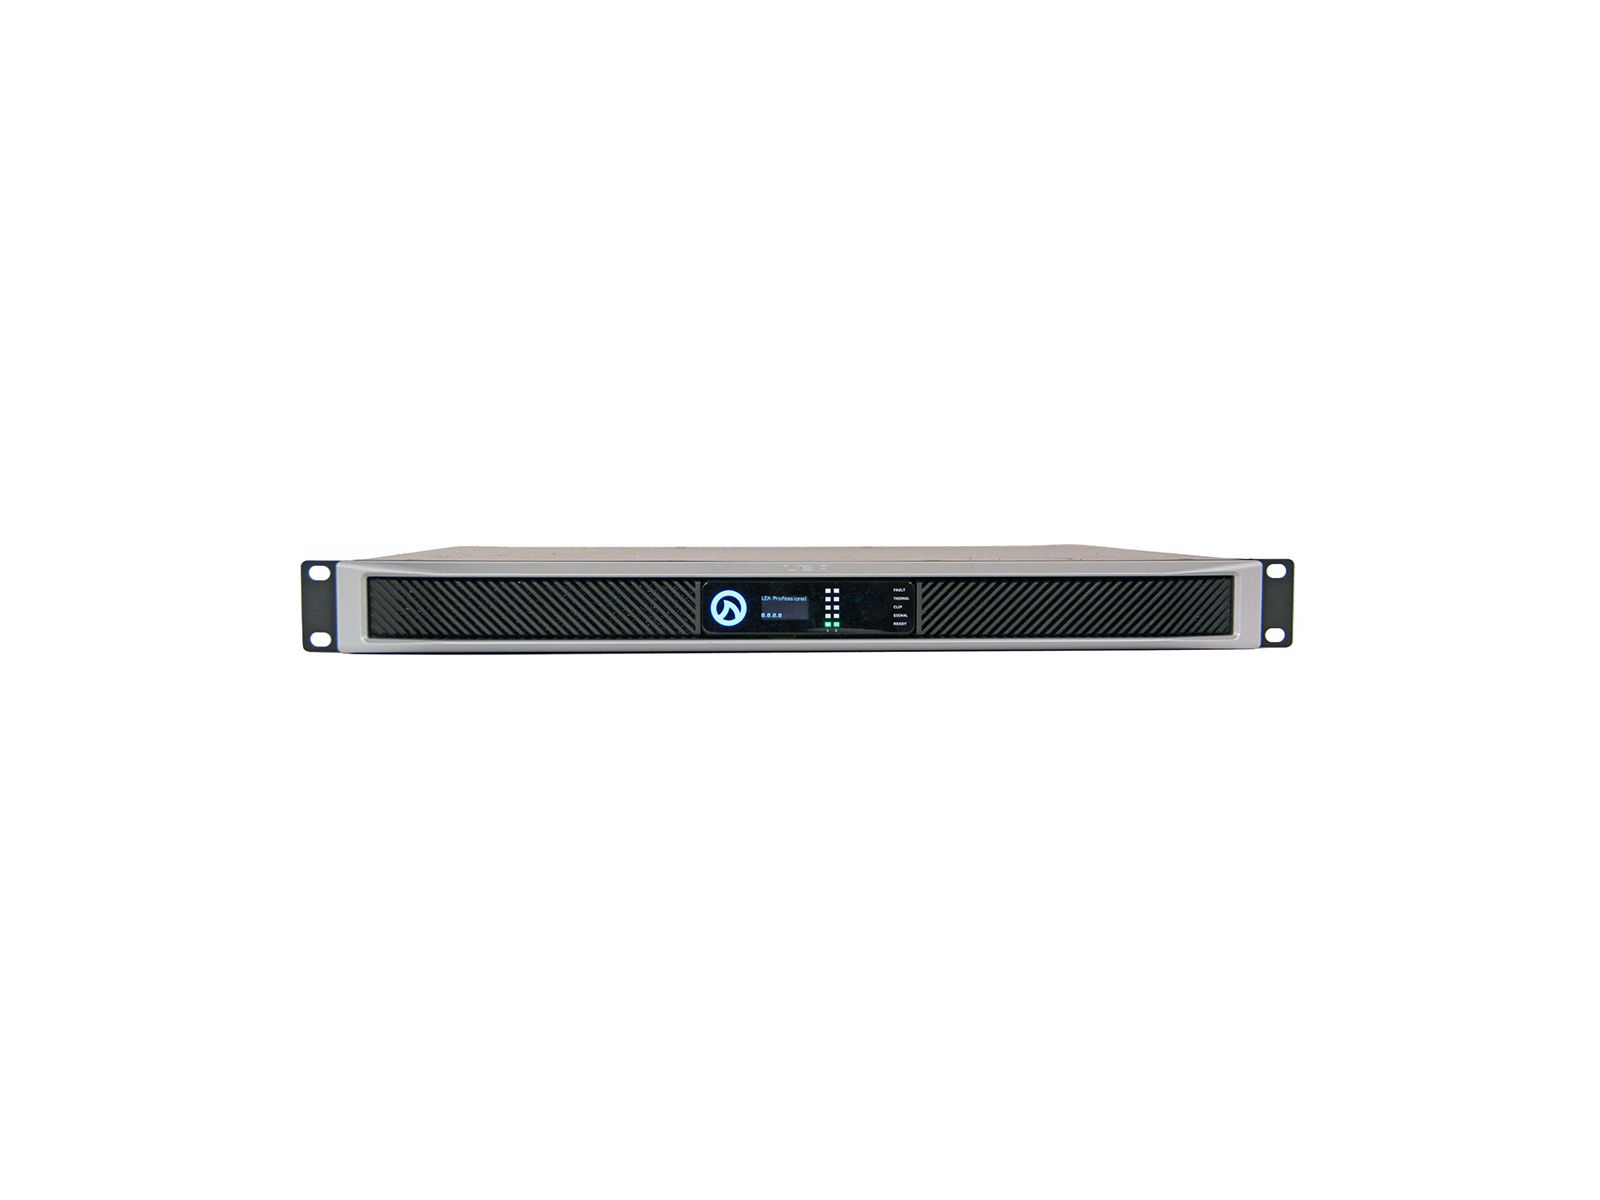 LEA Professional Connect 702 | Endstufe, 2x 700WRMS/4+8Ω, 100V, DSP, WiFi, LAN, Phoenix, 1HE